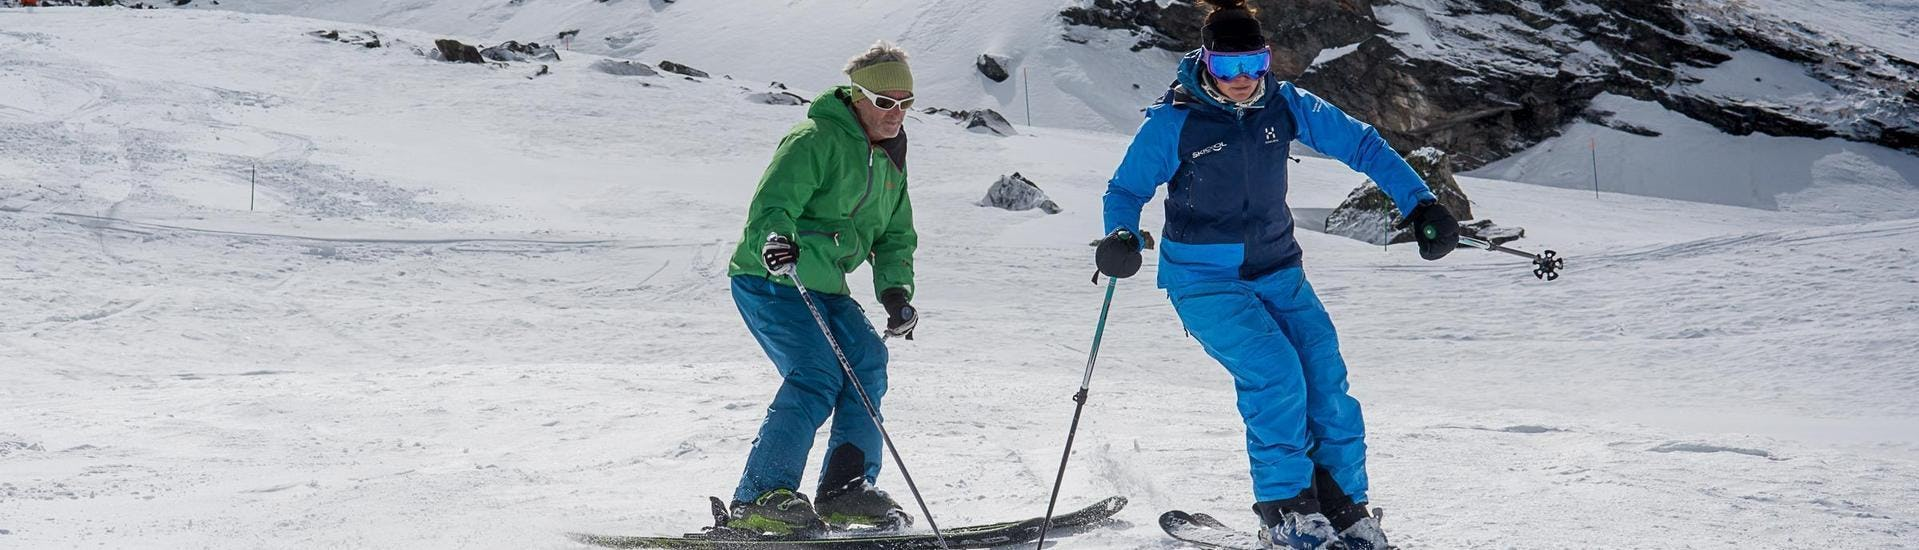 A skier is following his instructor from the ski school Ski Cool down the slope in the ski resort of Val Thorens.